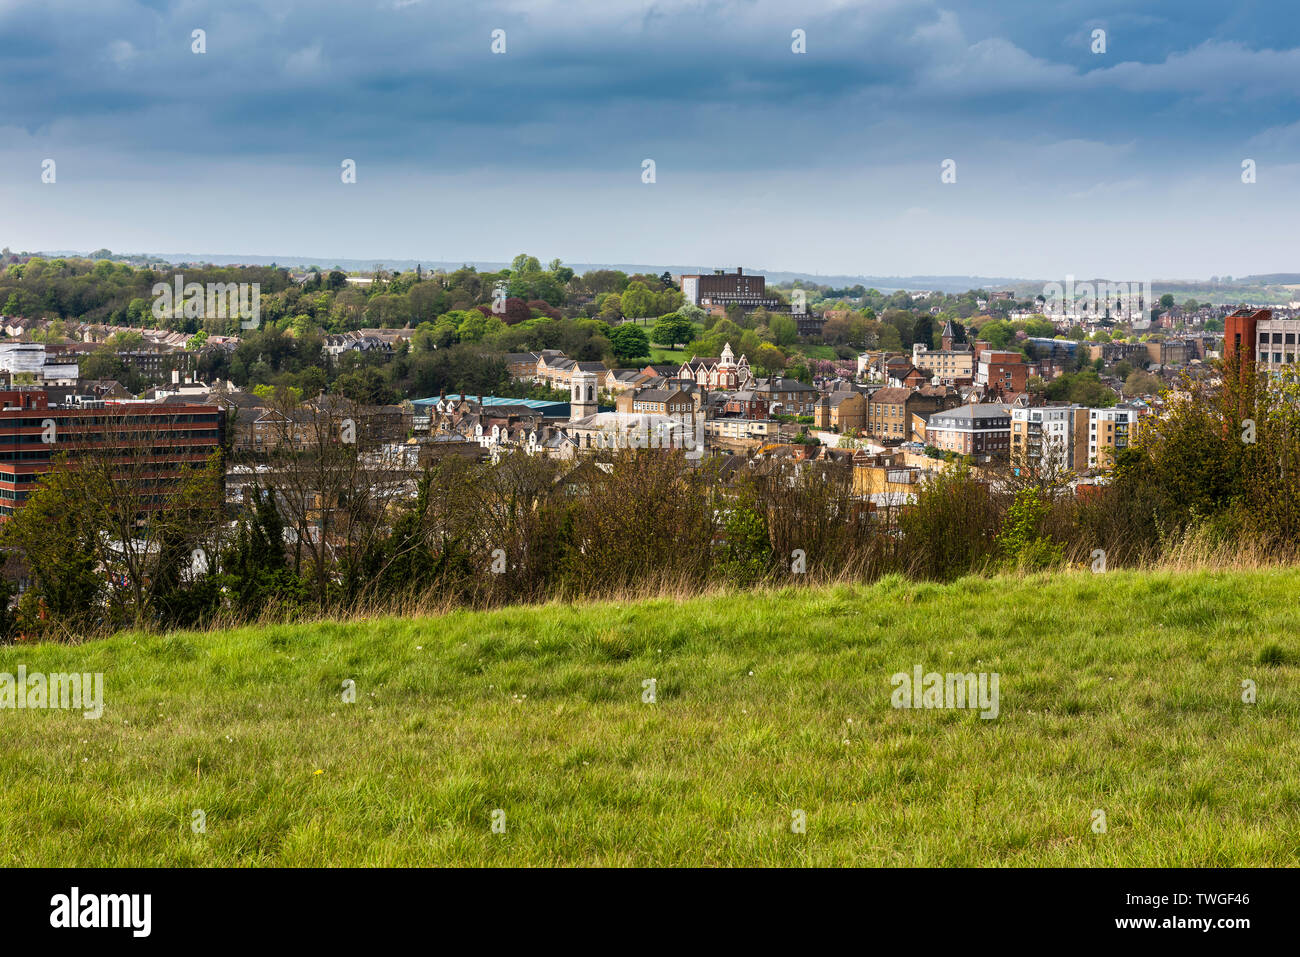 Chatham and Rochester viewed from the Heritage Park in Gillingham - Stock Image